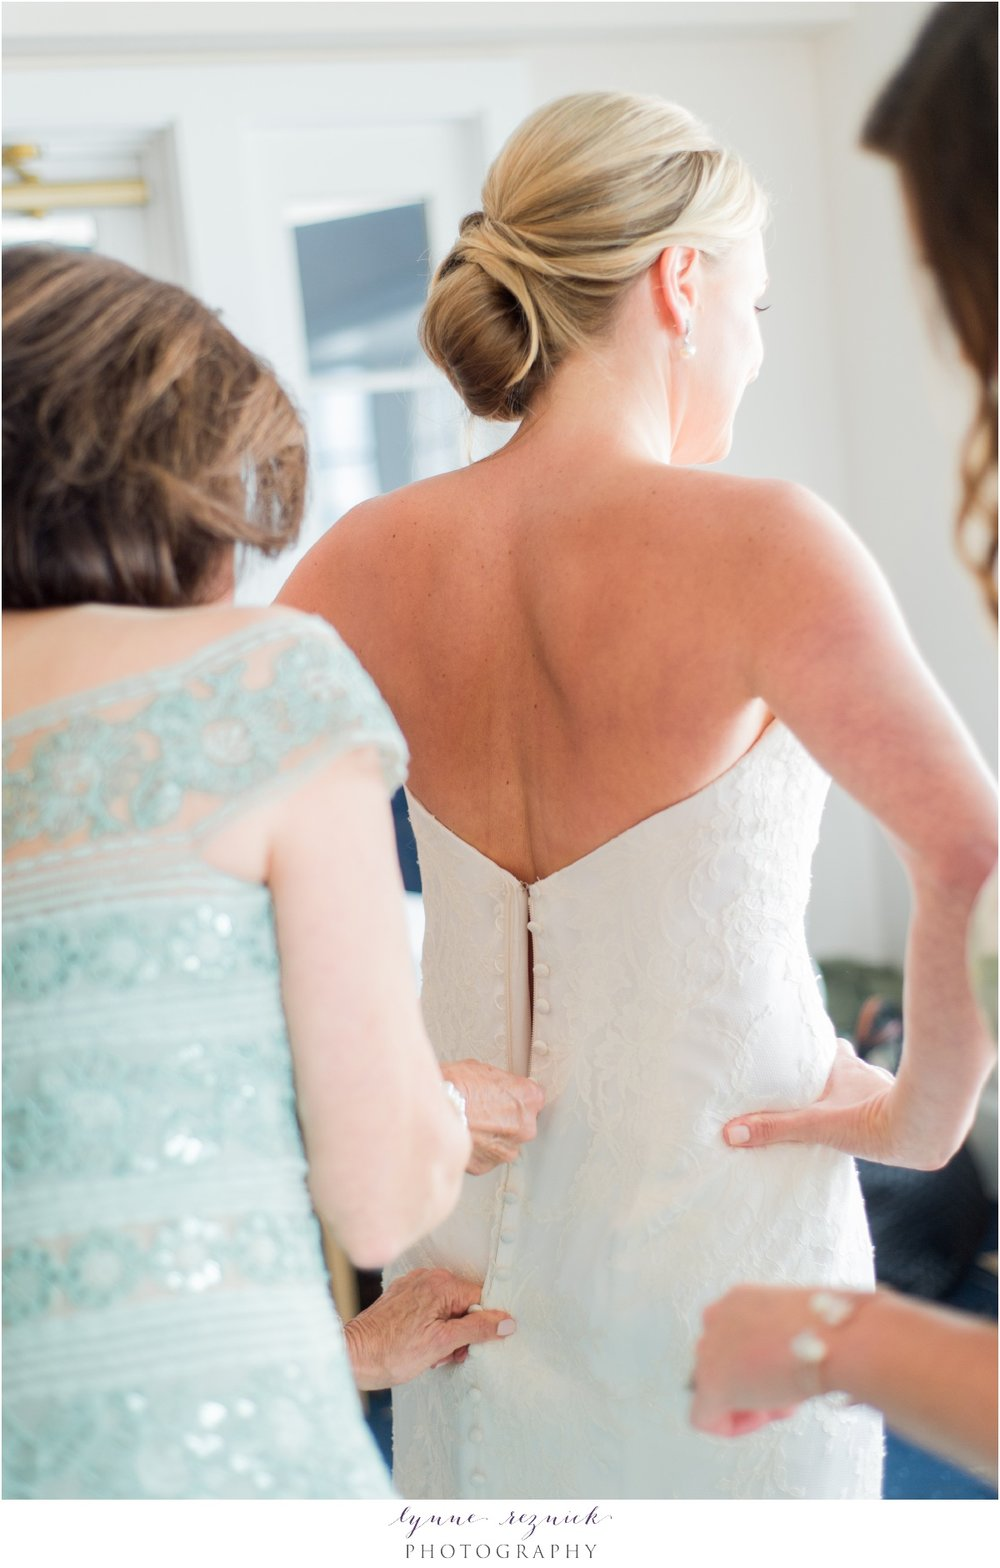 Mom and sister help bride get ready for ceremony at the belle haven club in greenwich CT